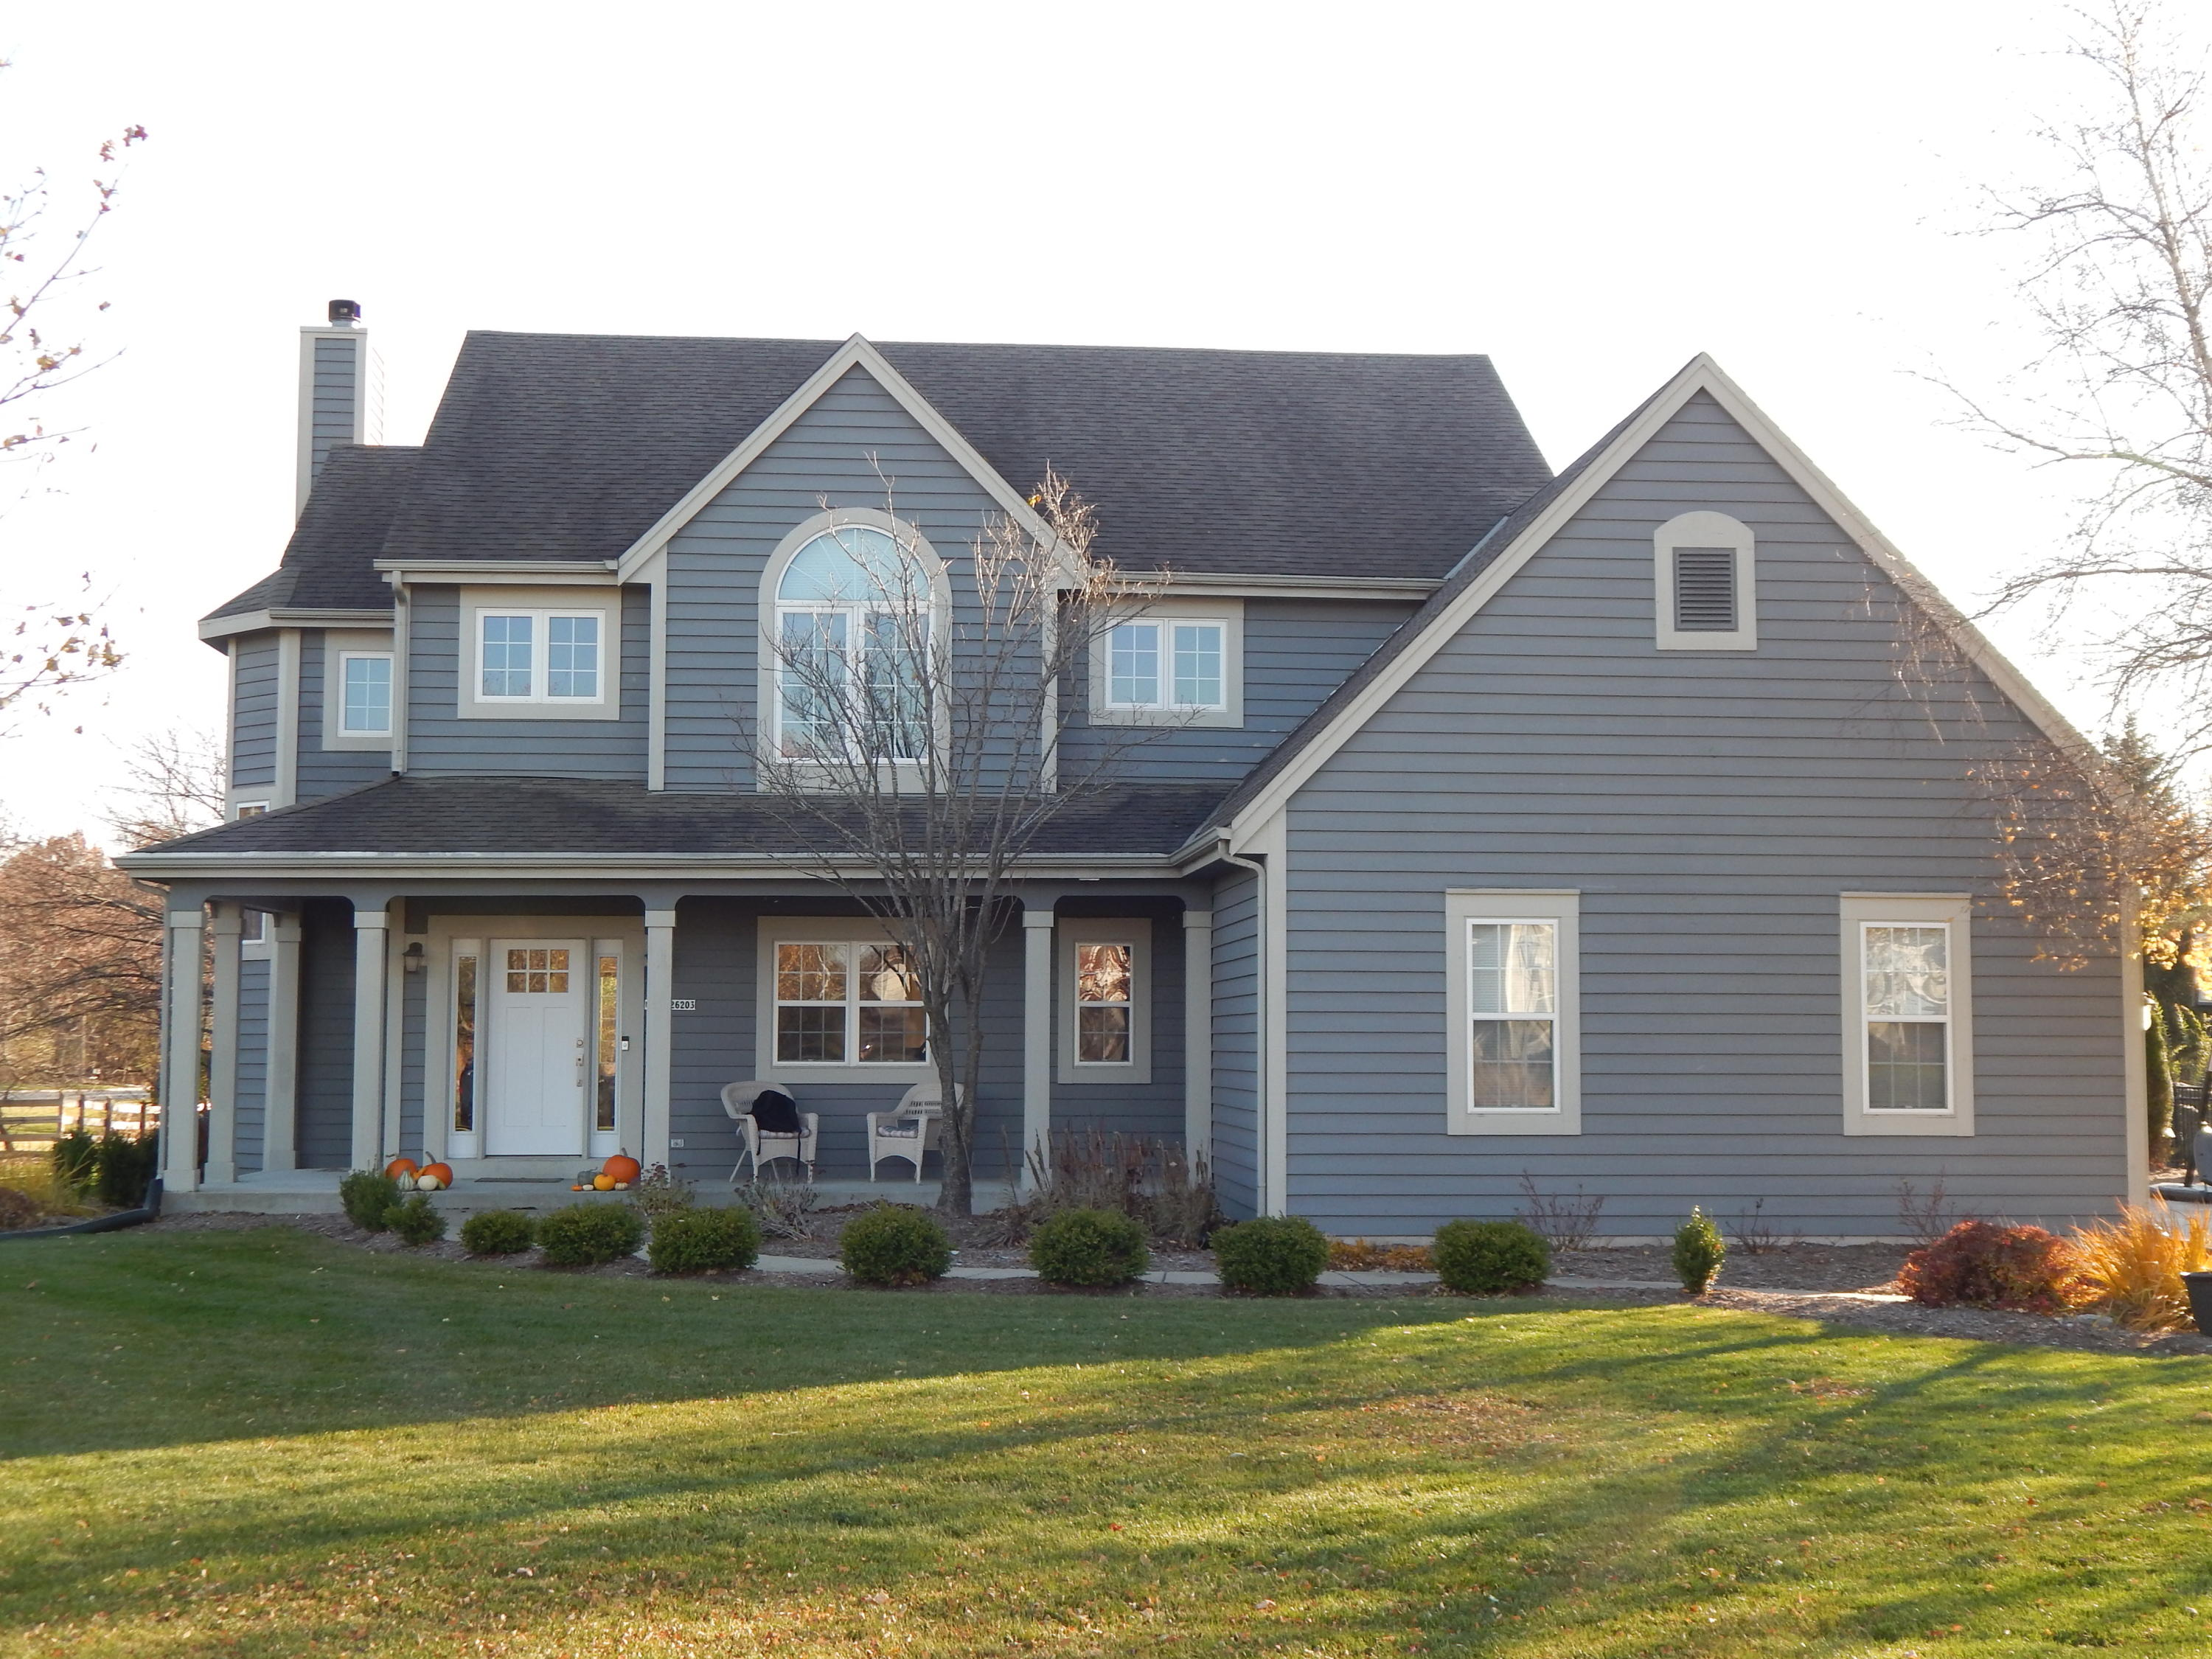 N27W26203 Coachman Dr, Pewaukee, Wisconsin 53072, 5 Bedrooms Bedrooms, 11 Rooms Rooms,3 BathroomsBathrooms,Single-Family,For Sale,Coachman Dr,1717659